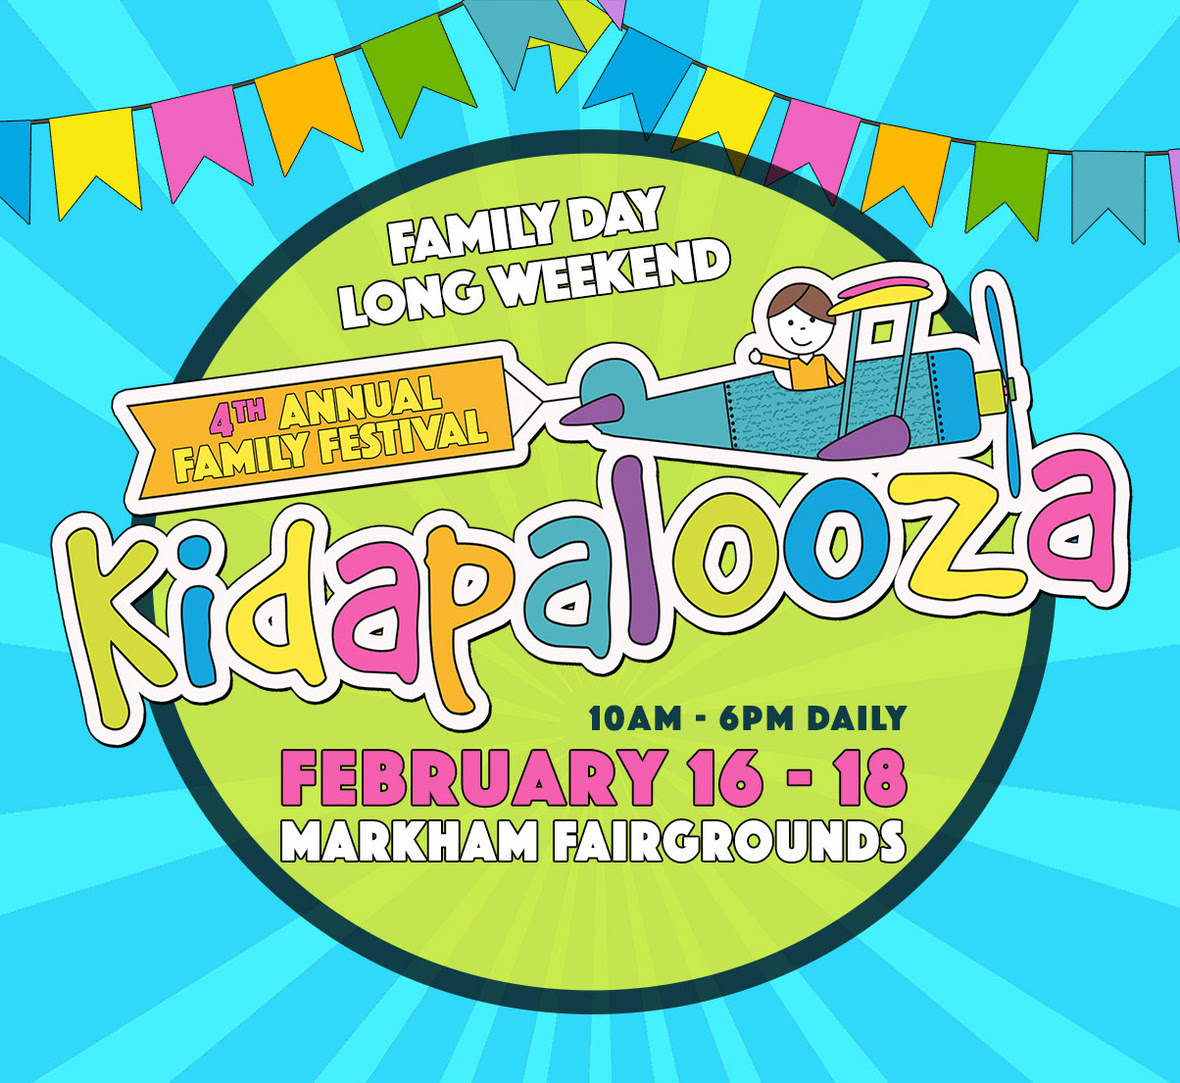 Kidapalooza2019fb smallest